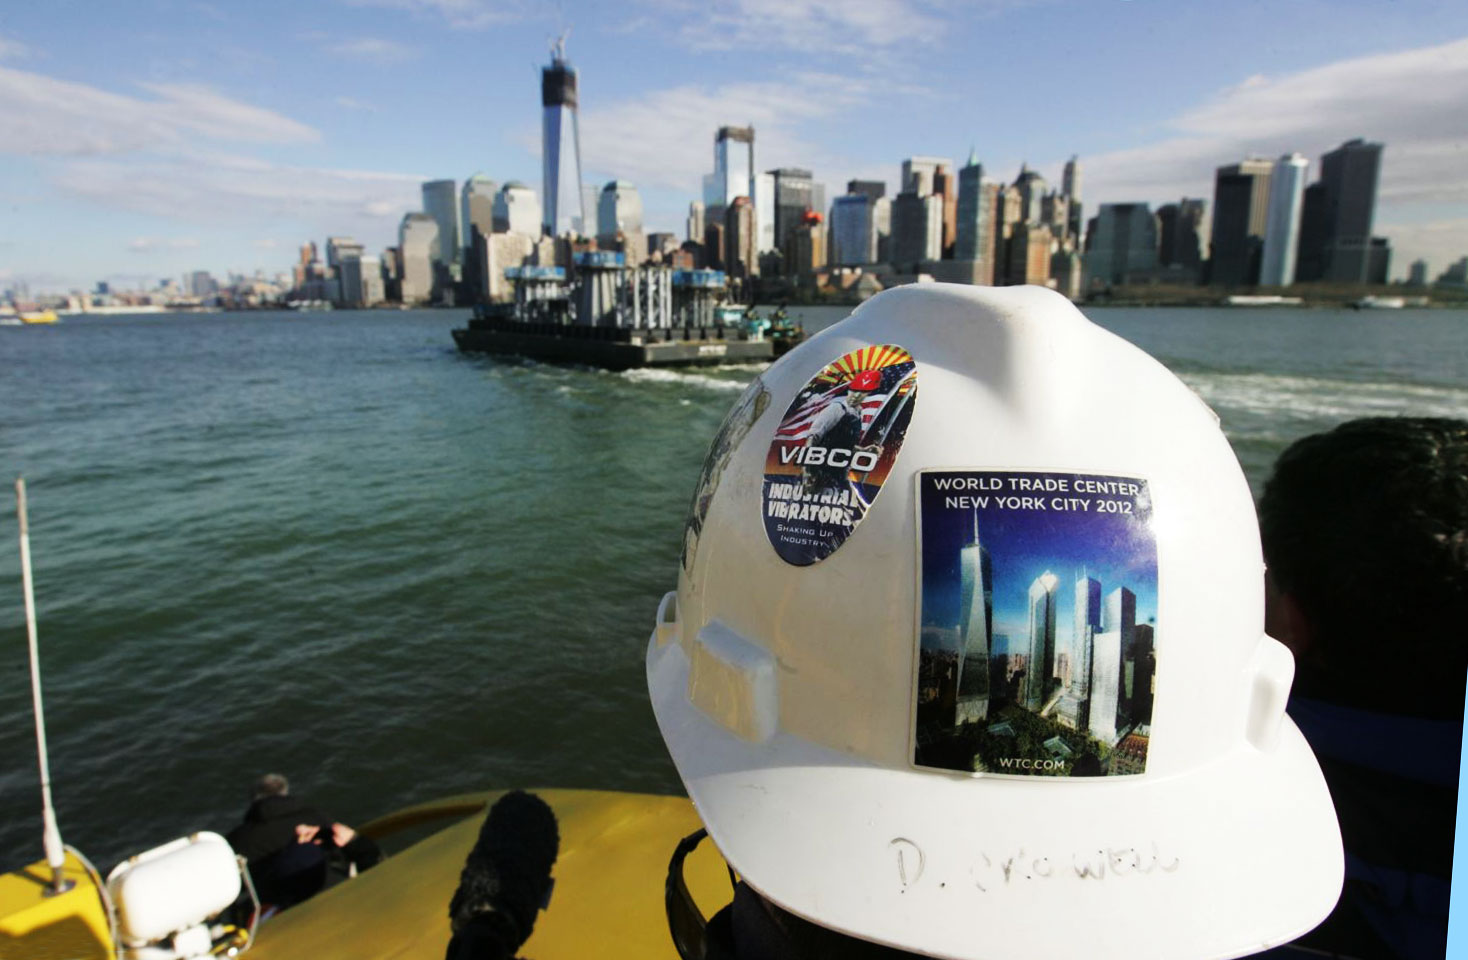 VIBCO and the World Trade Center